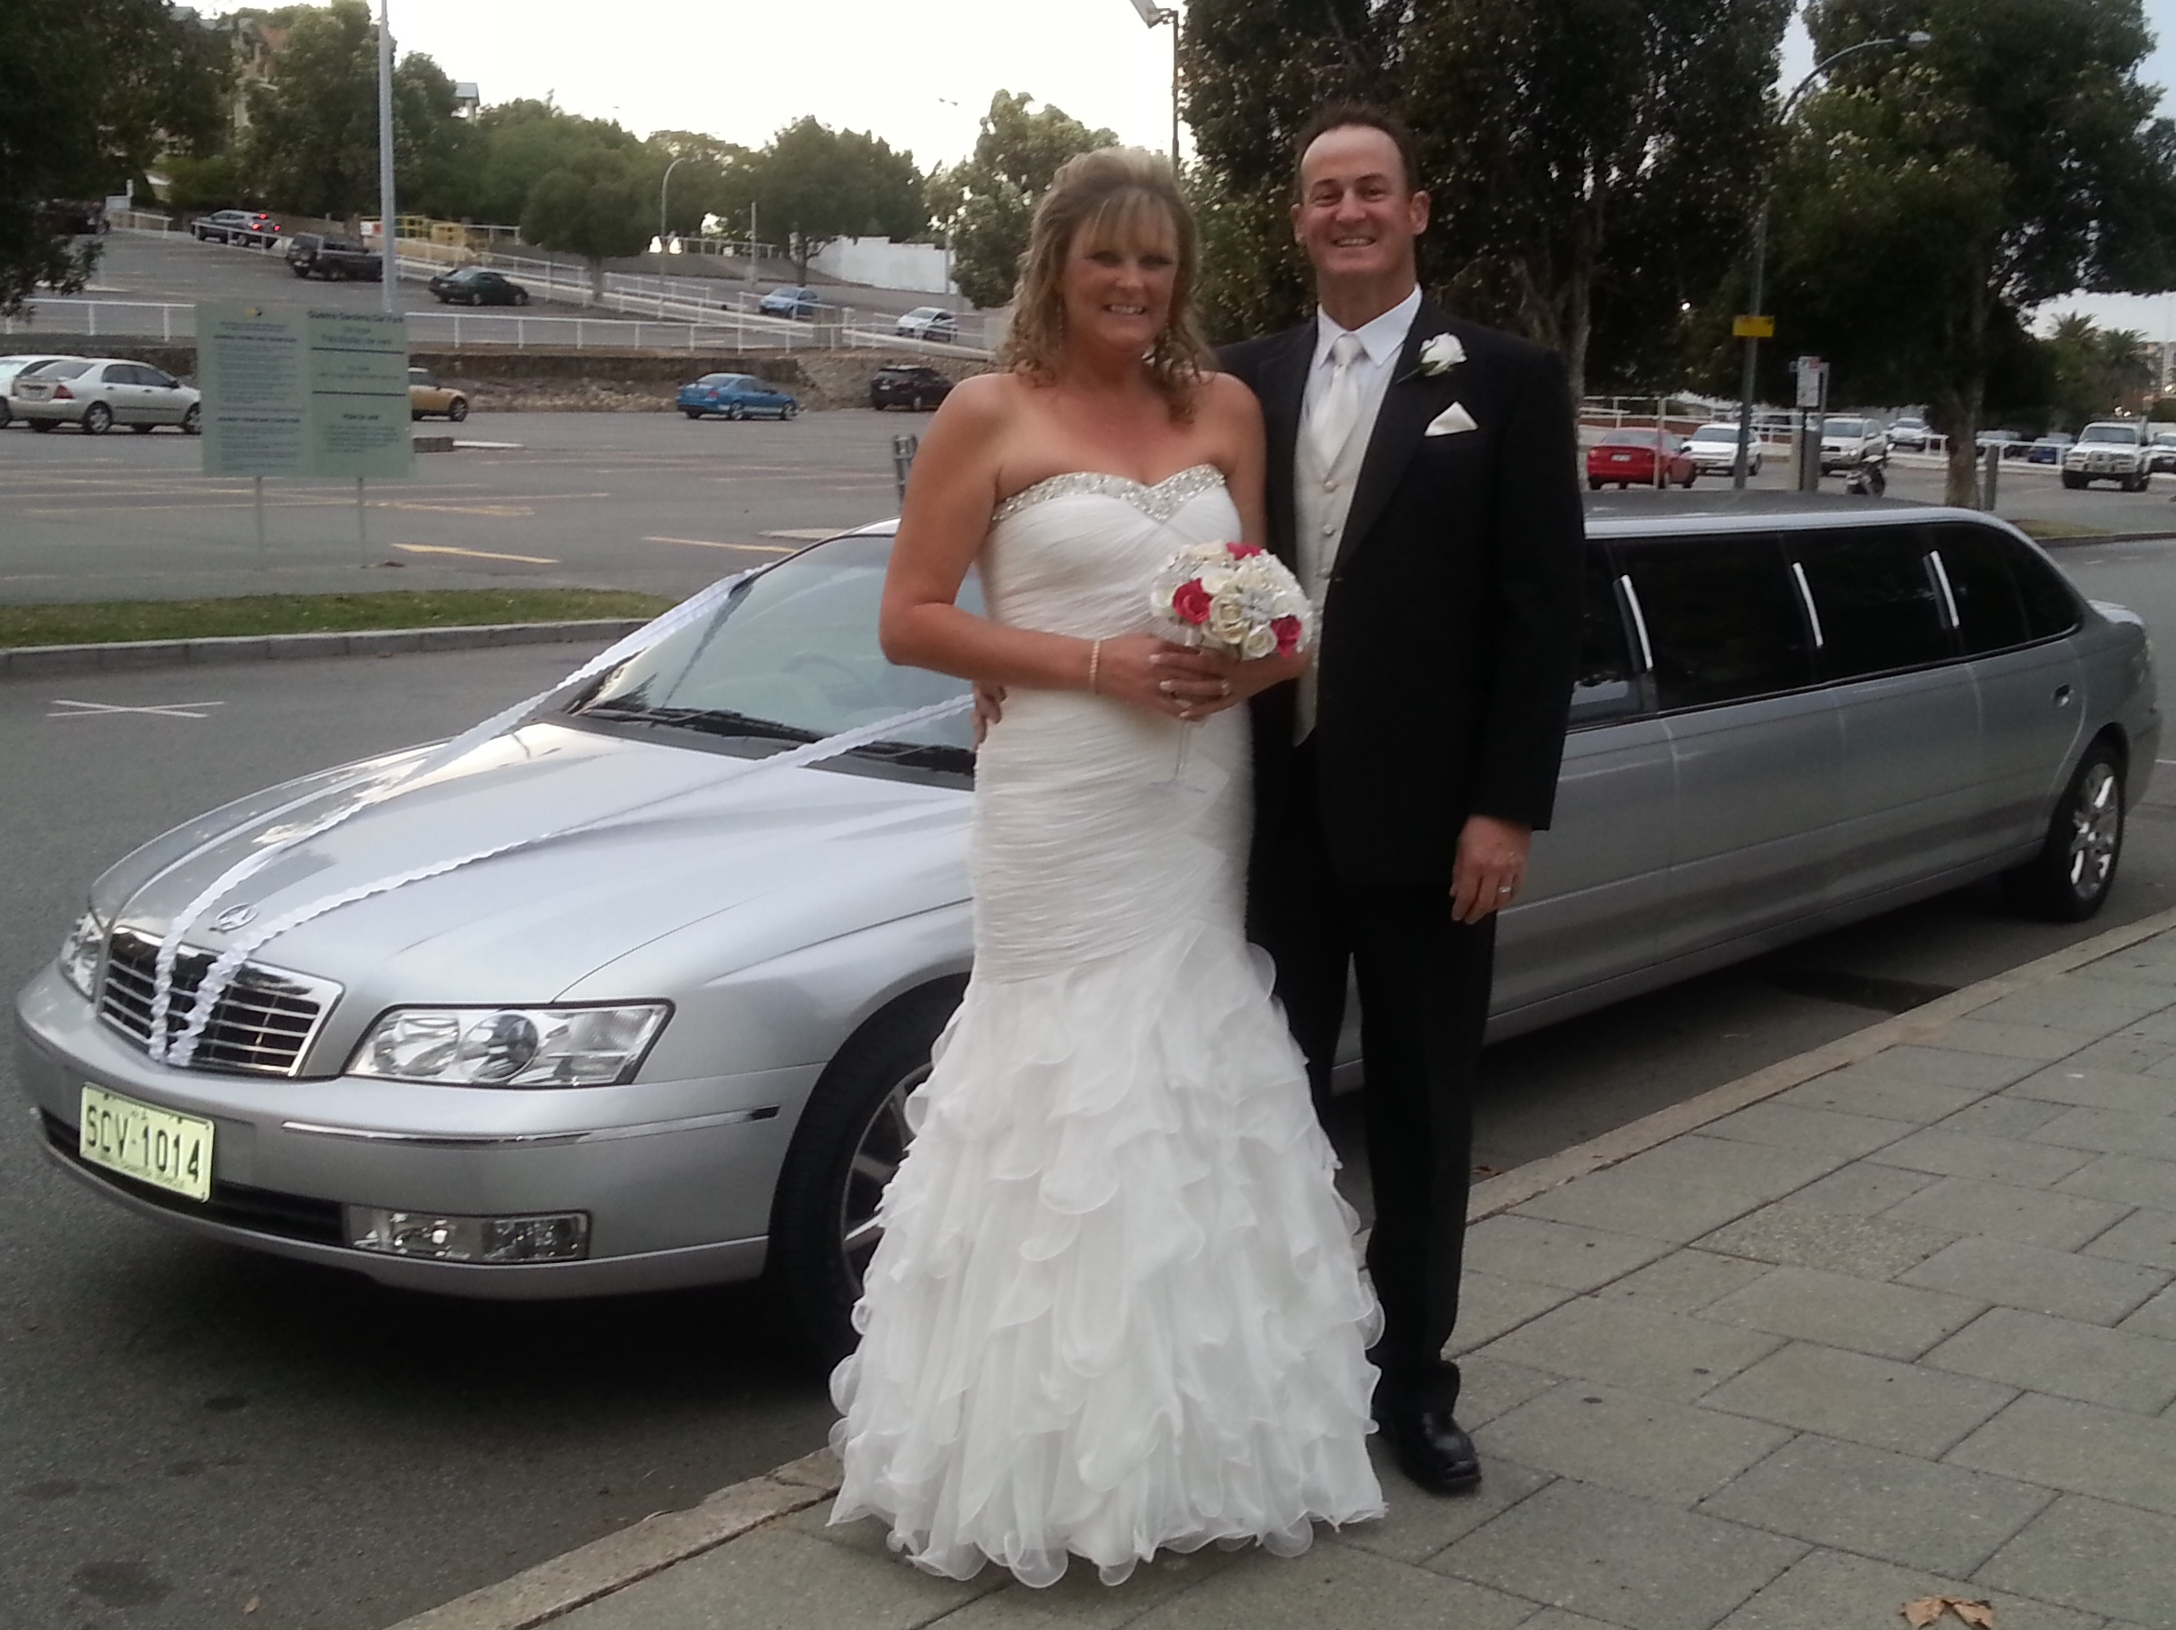 Great weather for a wedding day and Wedding Limousines Perth is proud to have been a small part of the celebrations